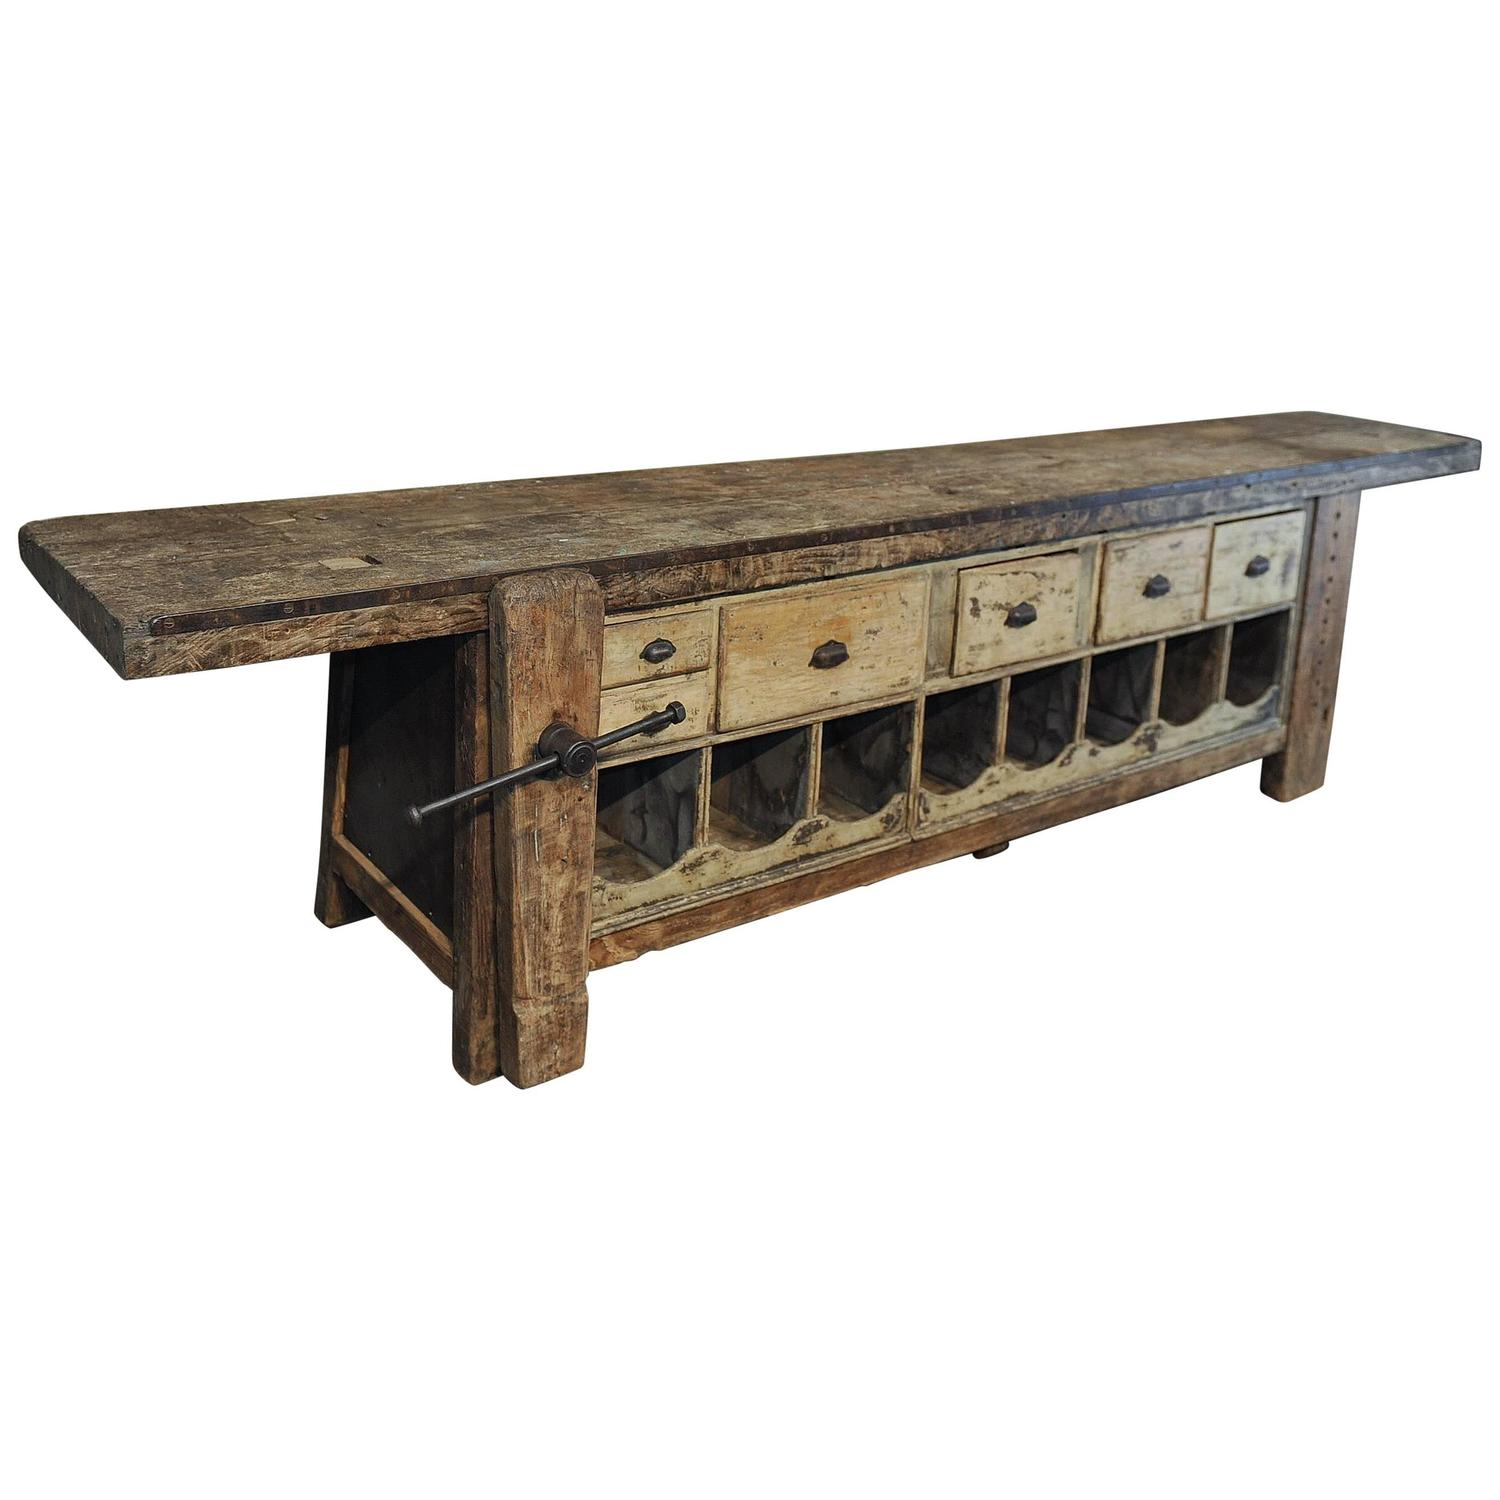 Antique Storage Cabinets Vintage Industrial Antique Wooden Printers Cabinet With Storage